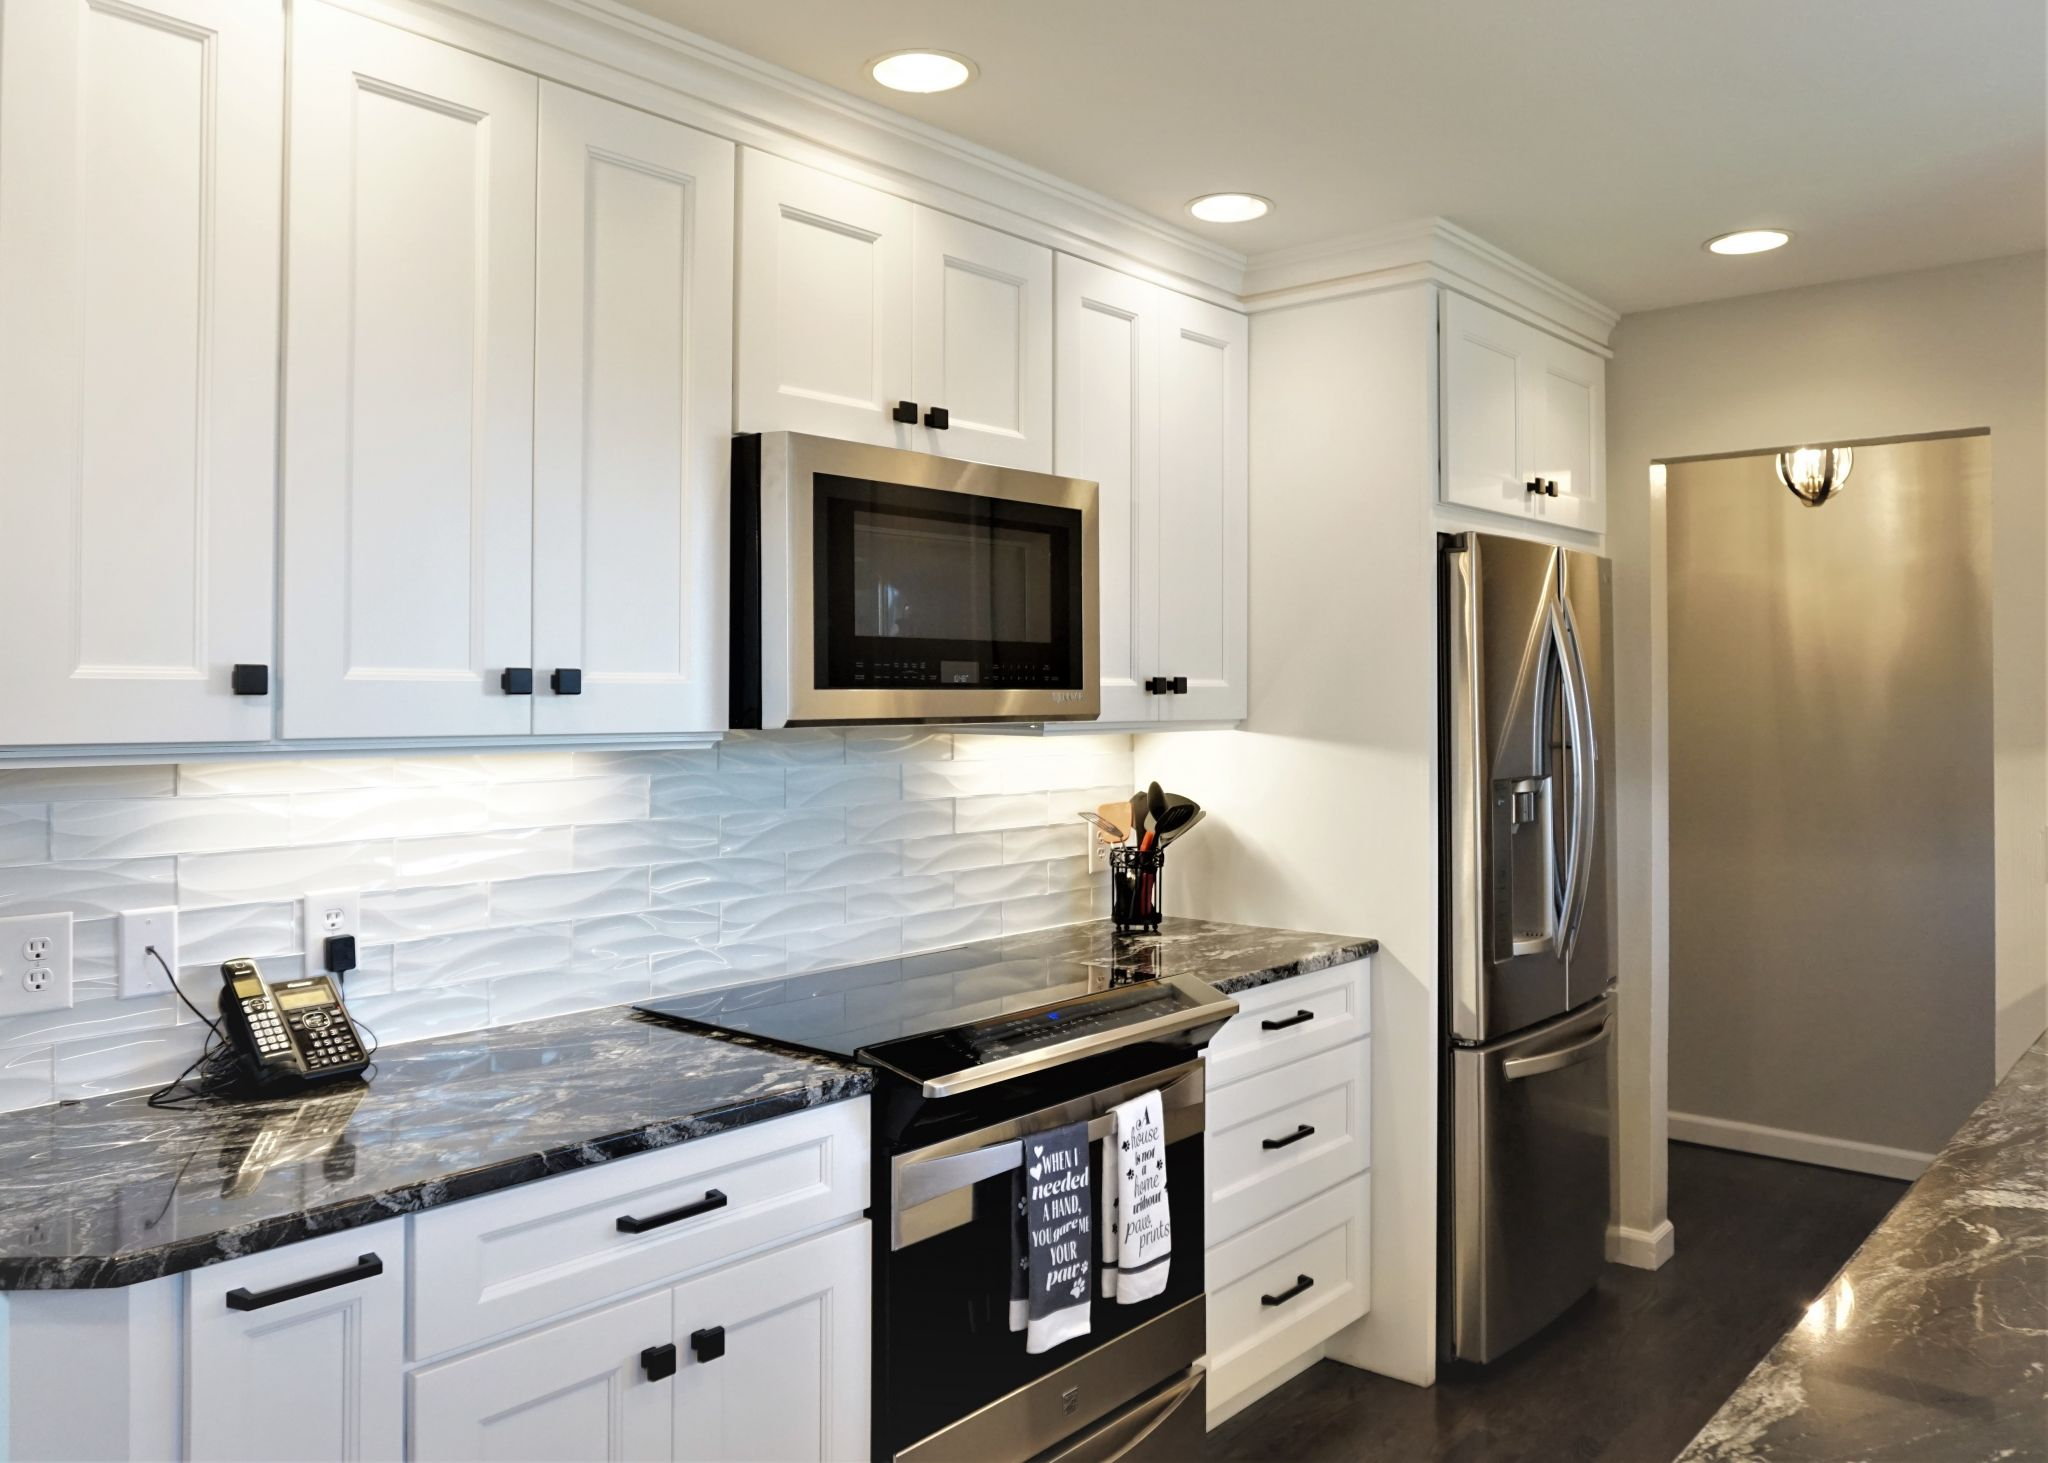 BKC Kitchen and Bath 80110